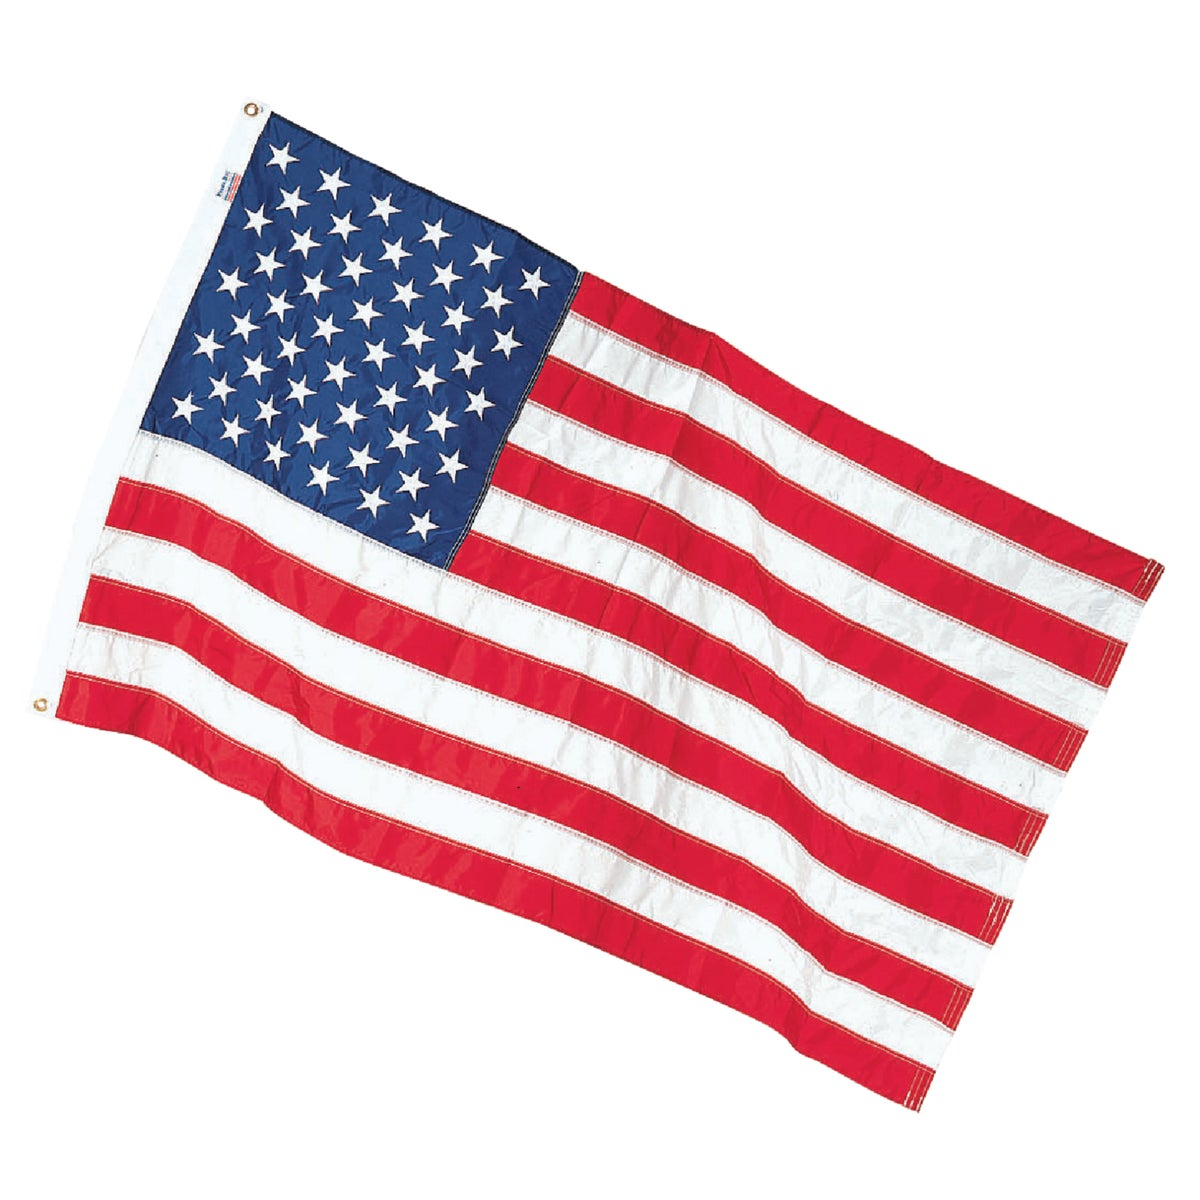 5X8 NYLON FLAG - US5PN by Valley Forge Flag